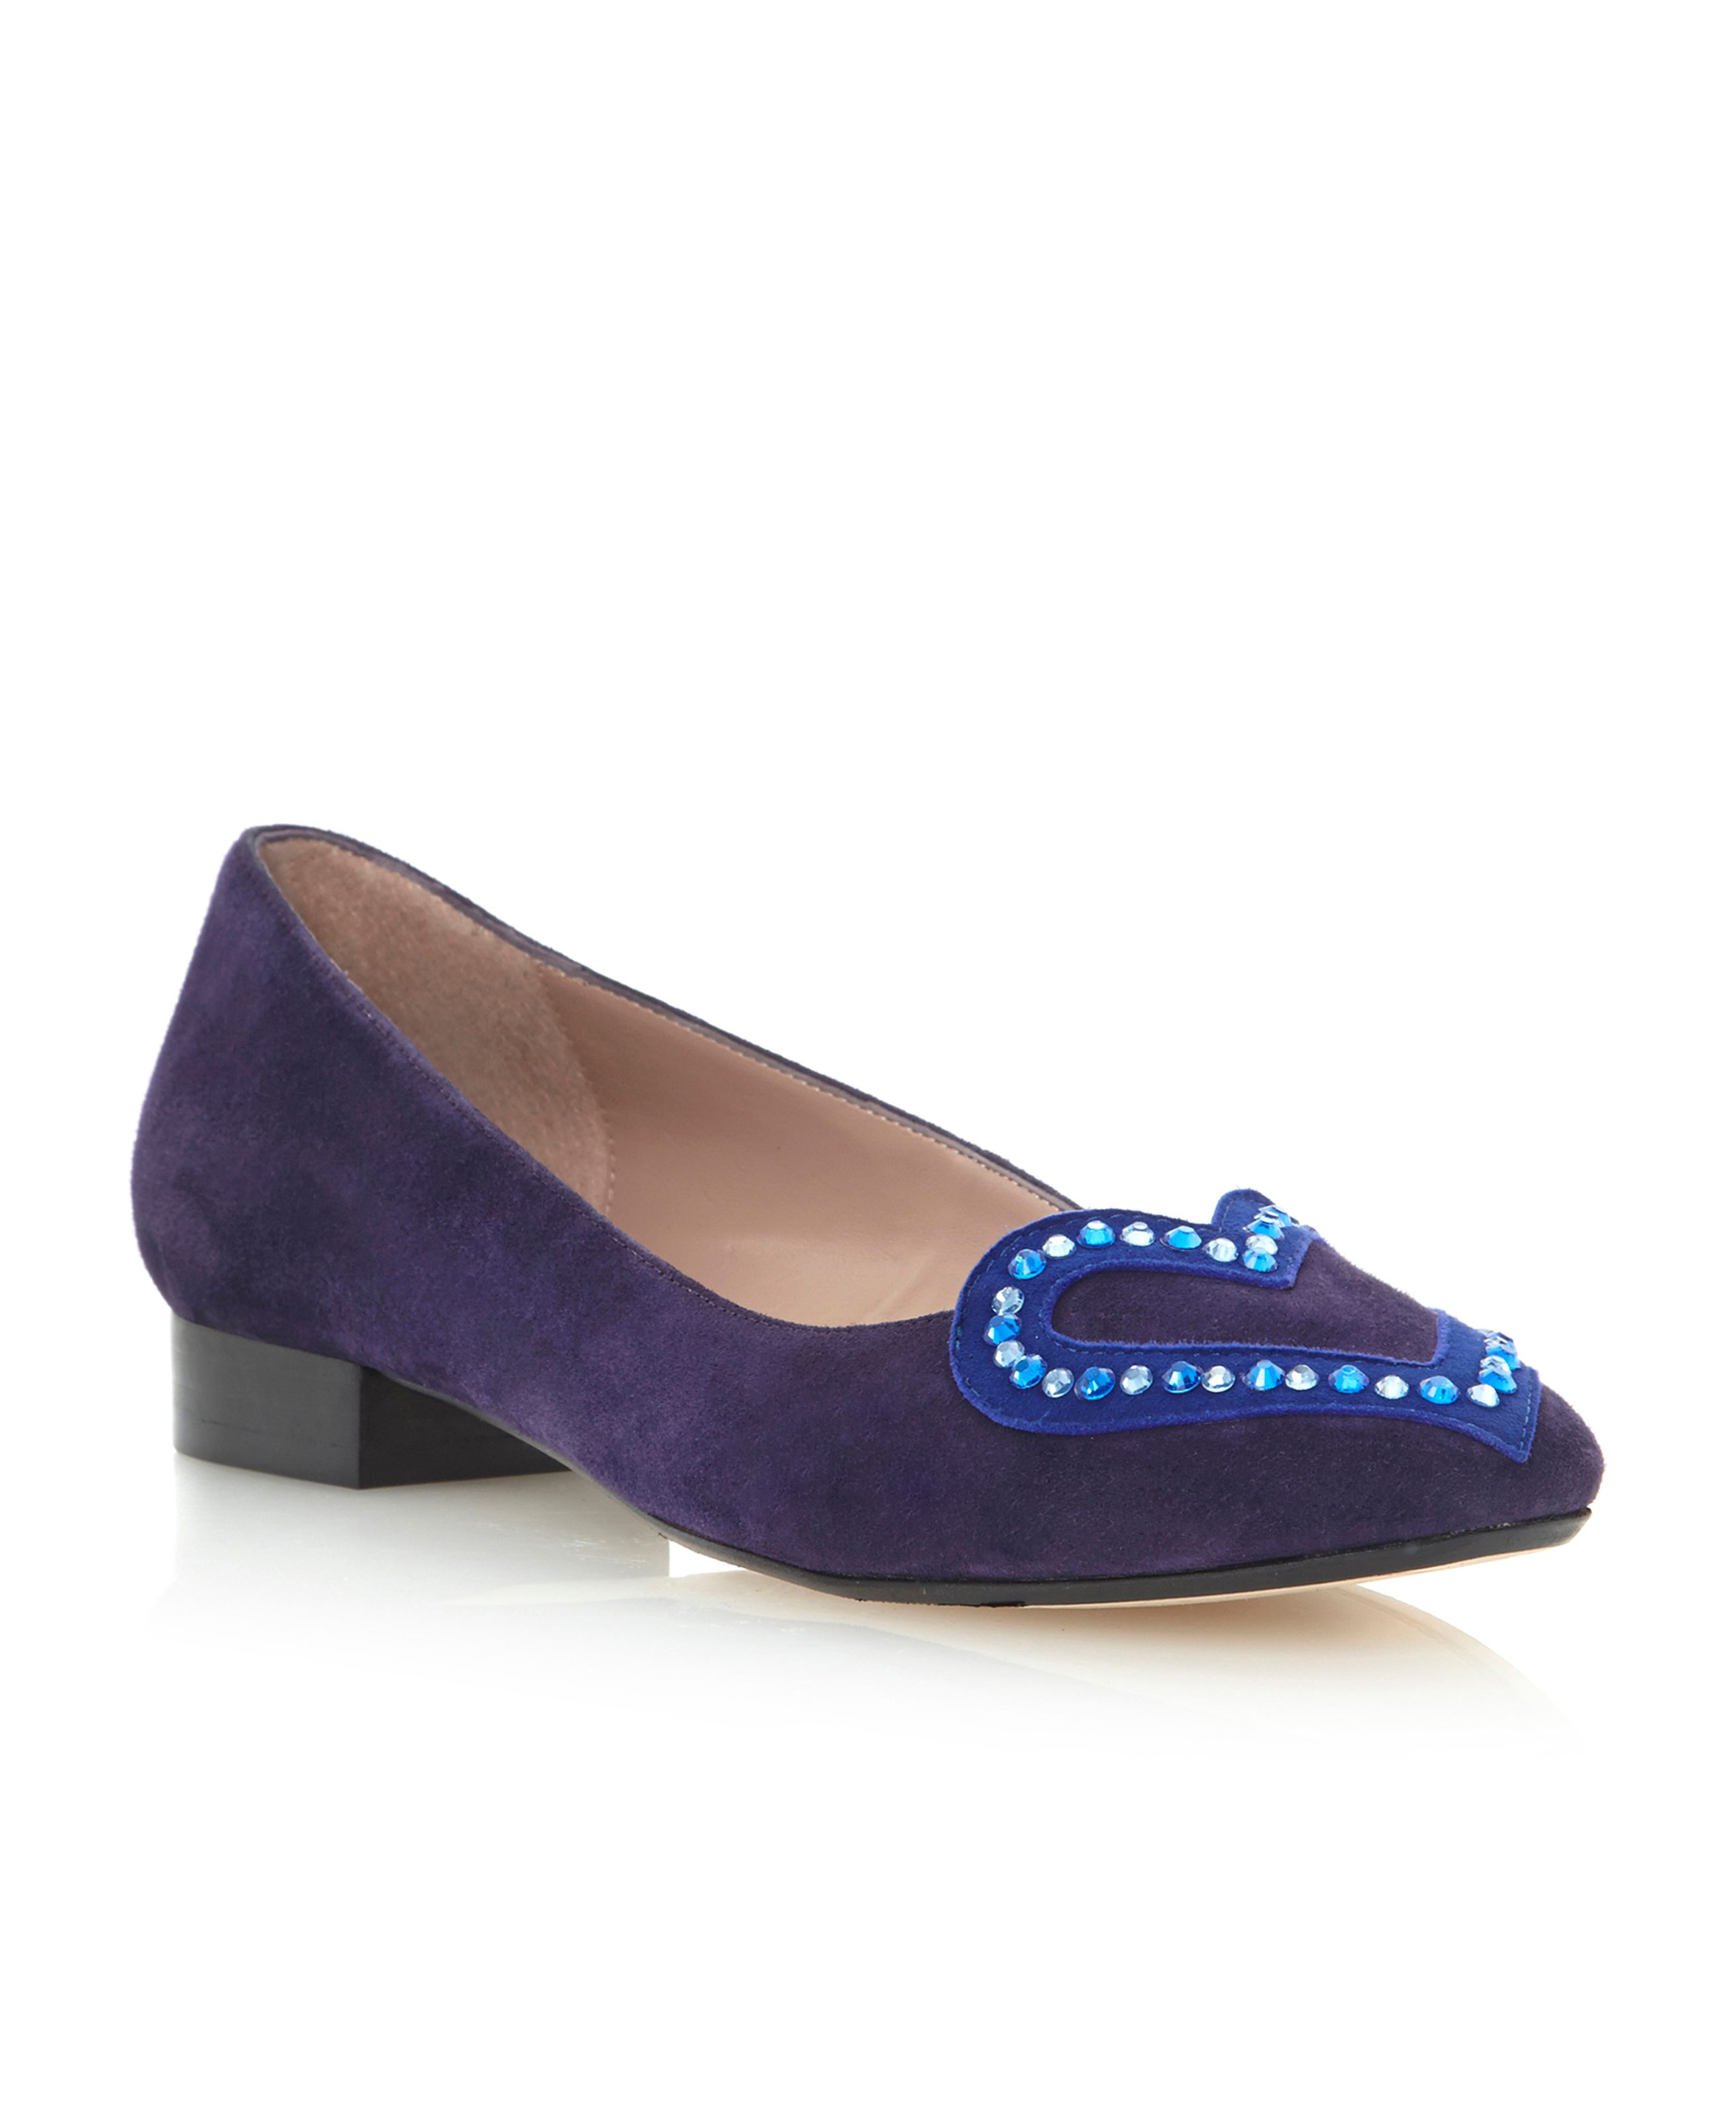 Loveley heart slip on loafer shoes